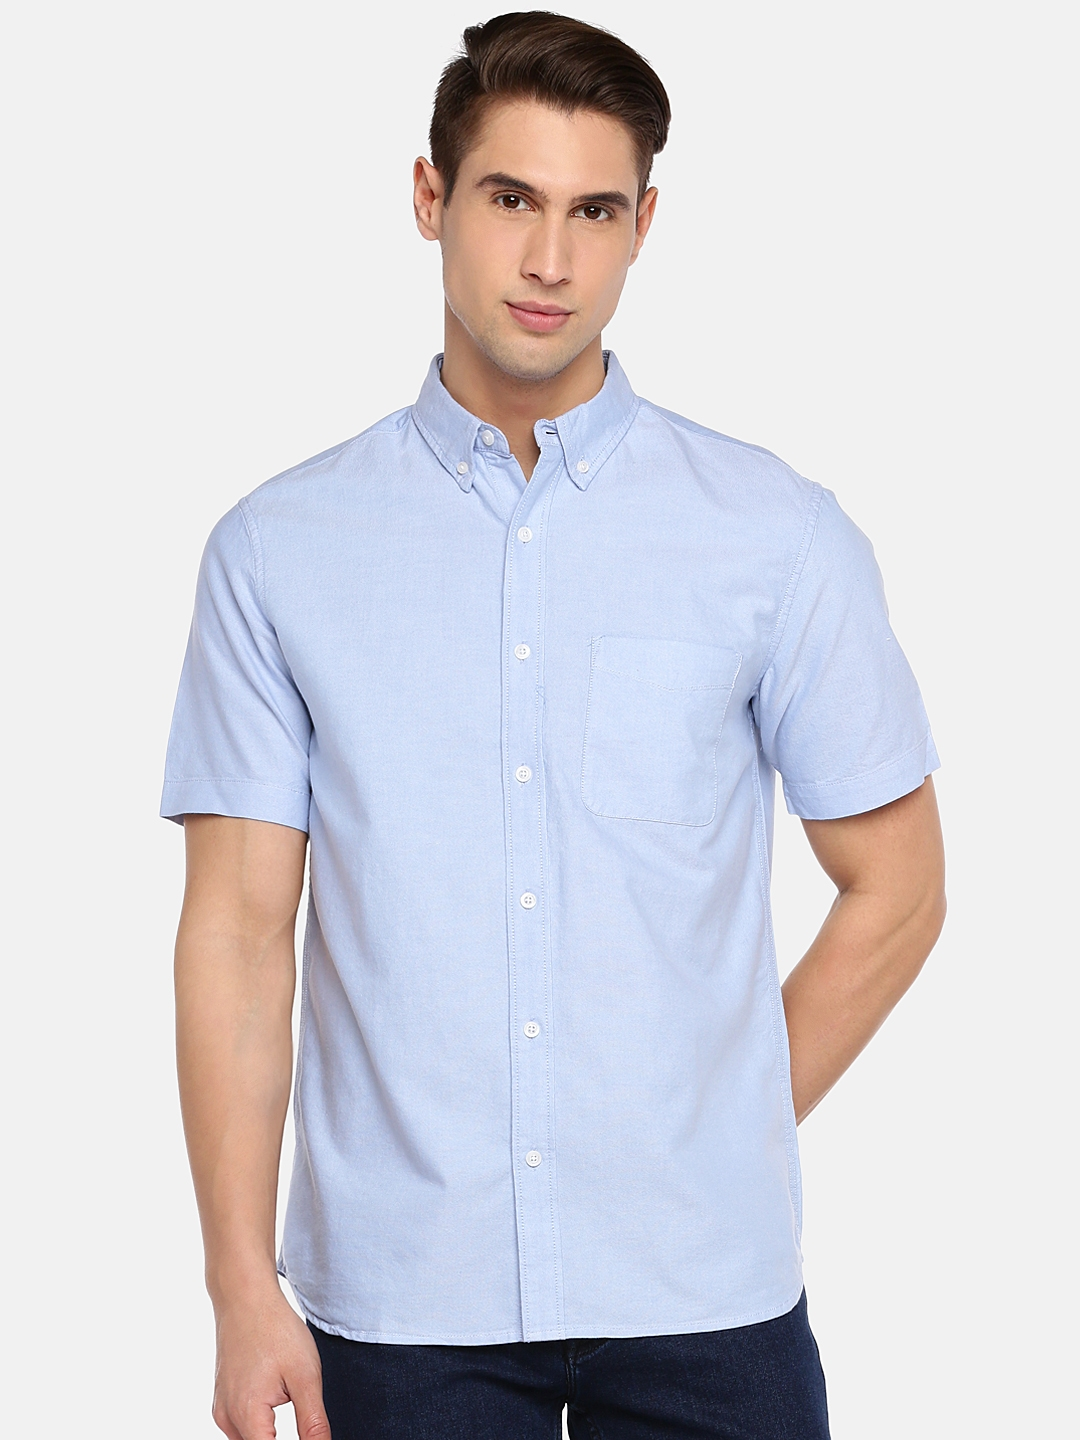 672af164b44c Buy Cottonworld Men Blue Regular Fit Solid Casual Shirt - Shirts for ...